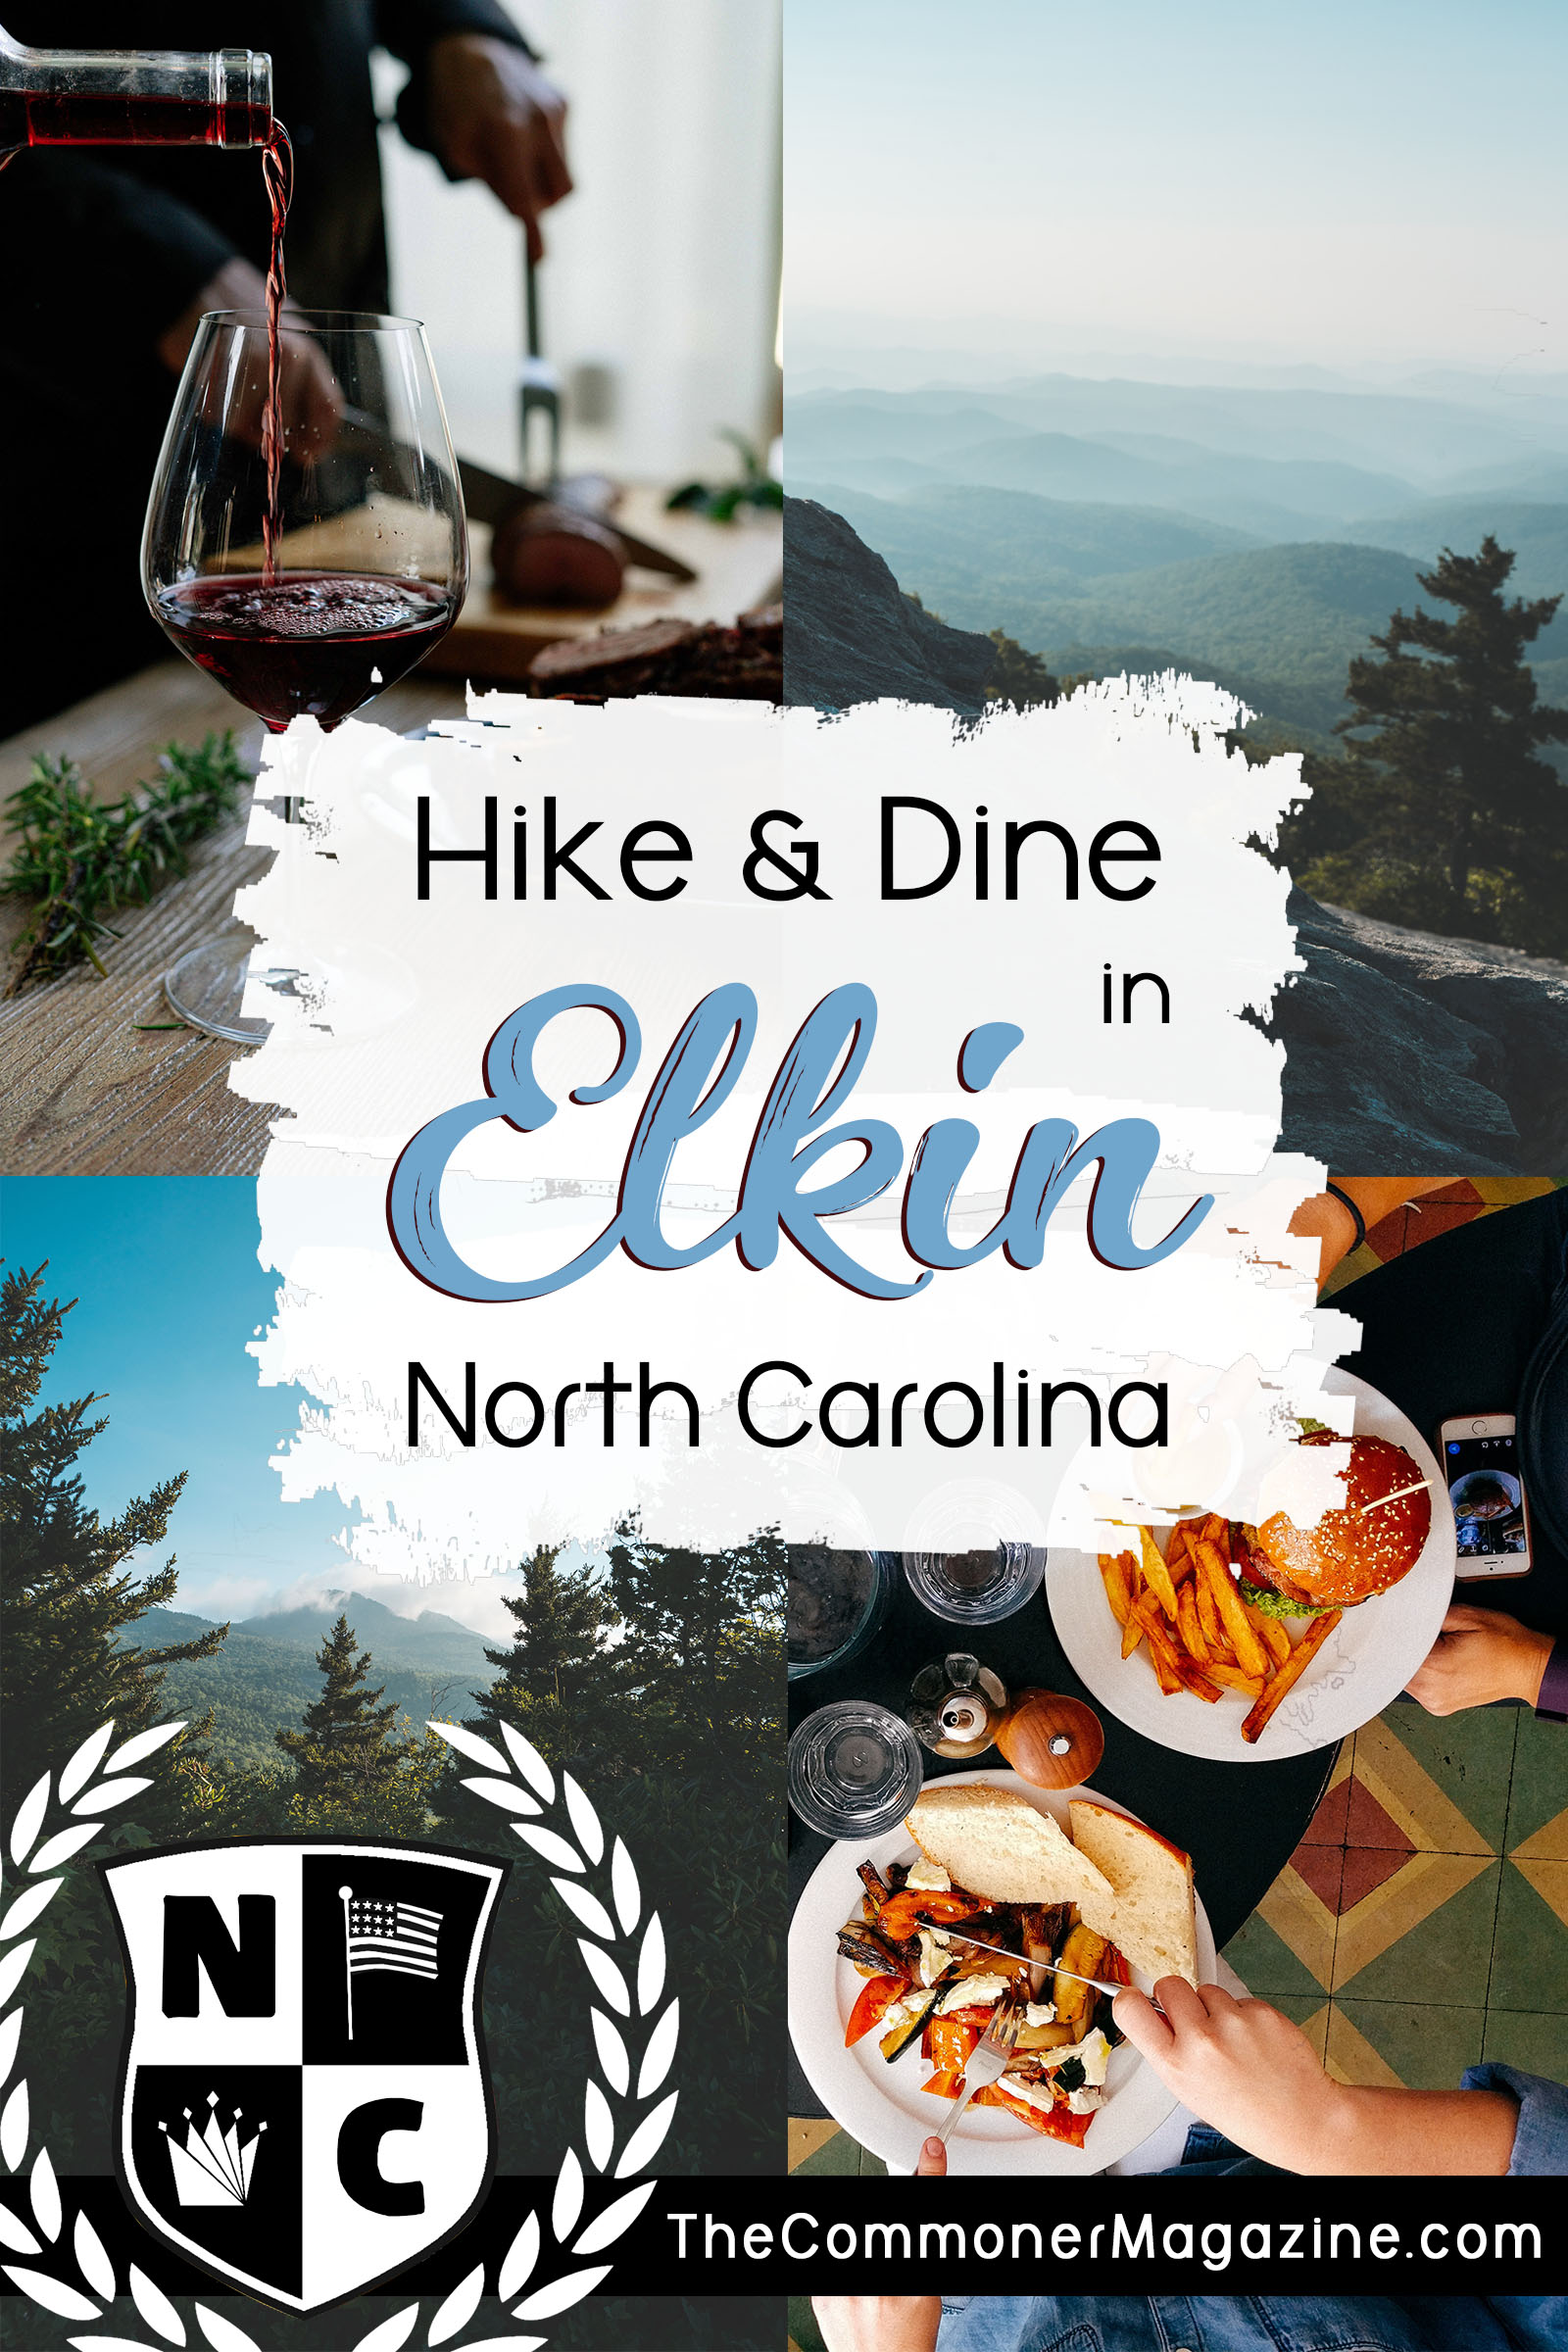 Go from the hiking trail to the wine trail in the Yadkin Valley in Western North Carolina. There's plenty of outdoor activities available no matter the season. If you prefer the indoors there's plenty of fine shopping and dining to be had in the historic town of Elkin. The Commoner Magazine, full of USA travel tips from local experts. #USAtravel #NorthCarolina #Thingstodoinnorthcarolina #Elkin #ElkinNC #YadkinValley #Winetrail #hiking #mountains